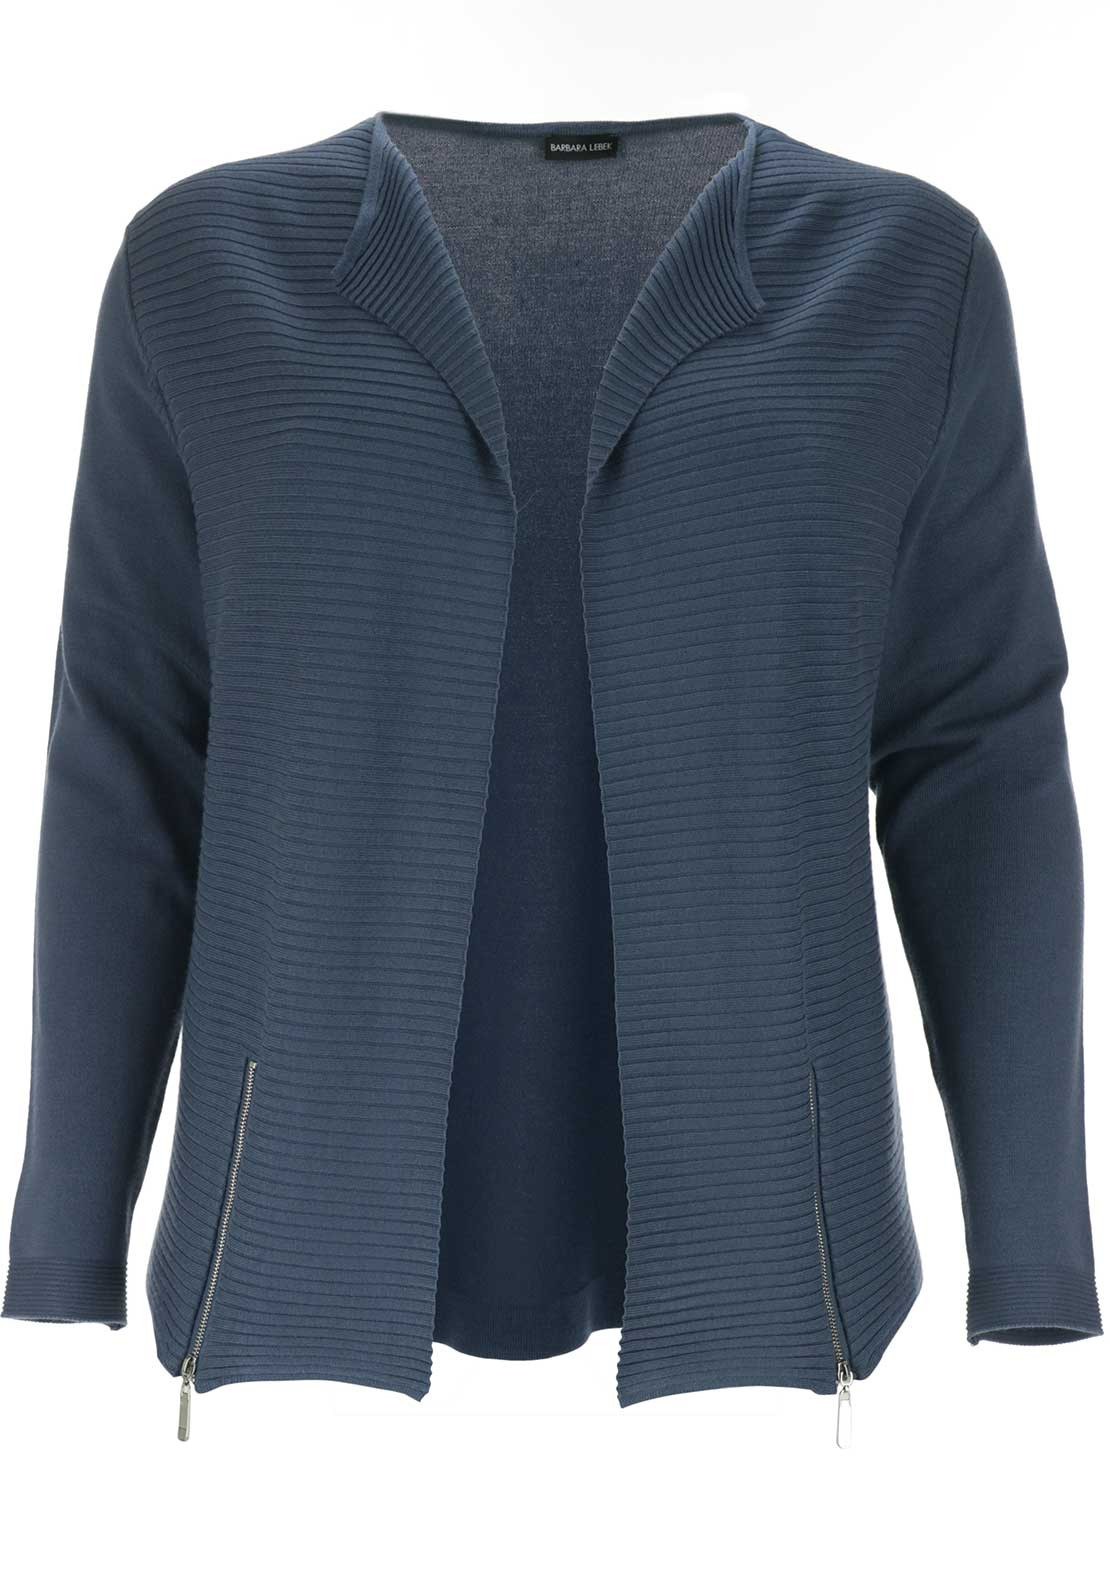 Barbara Lebek Ribbed Panel Cardigan, Blue